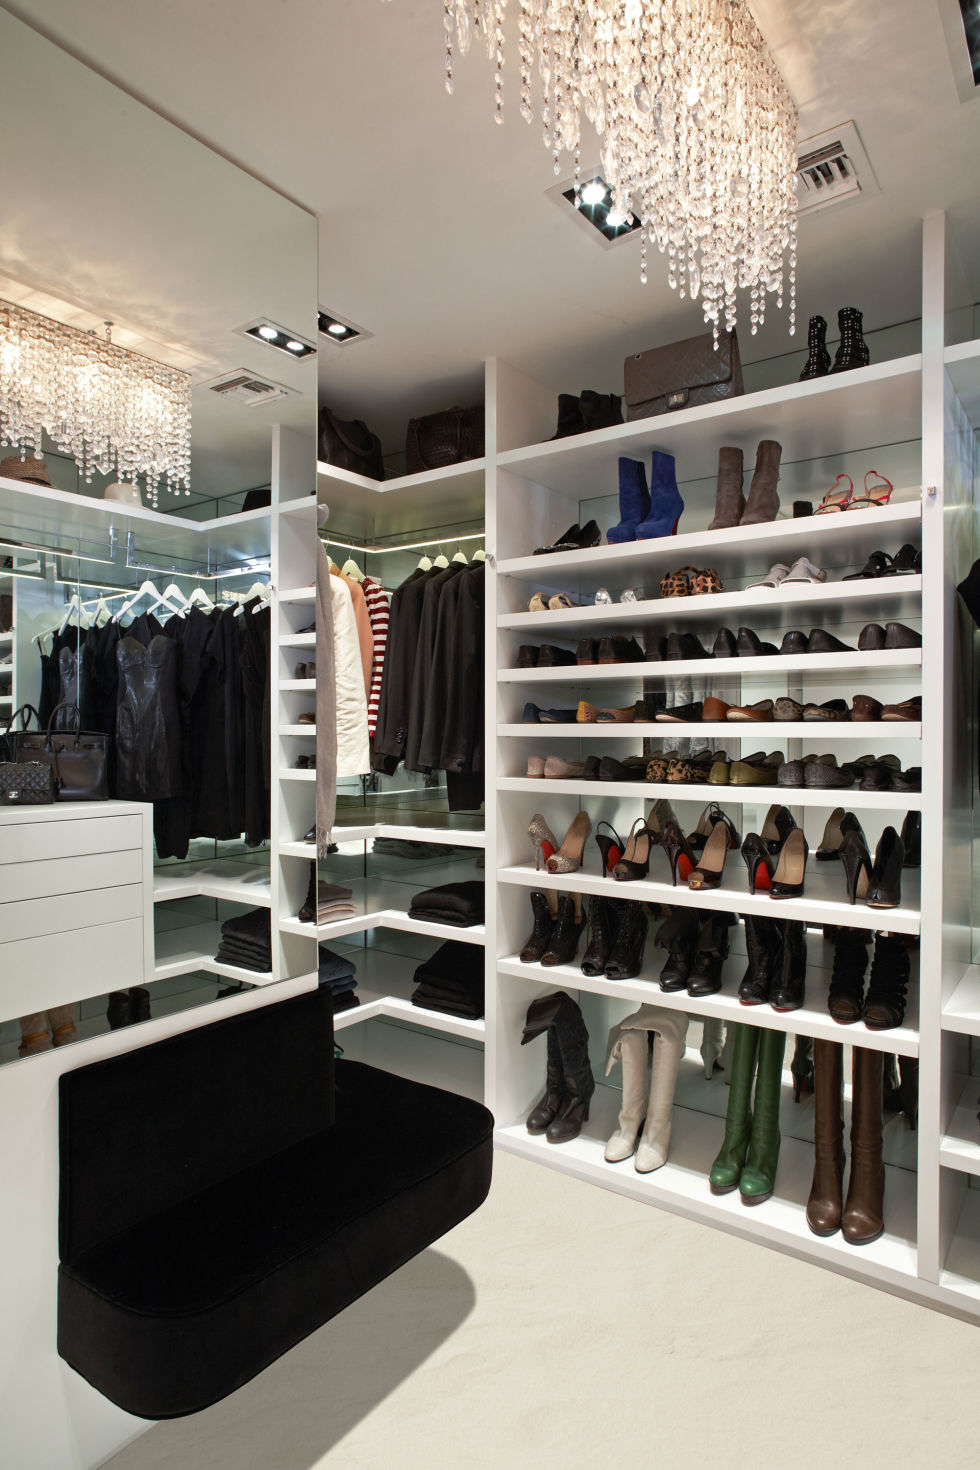 Beautiful Closets Pictures 12 designer closets ideas - dream dressing room photos